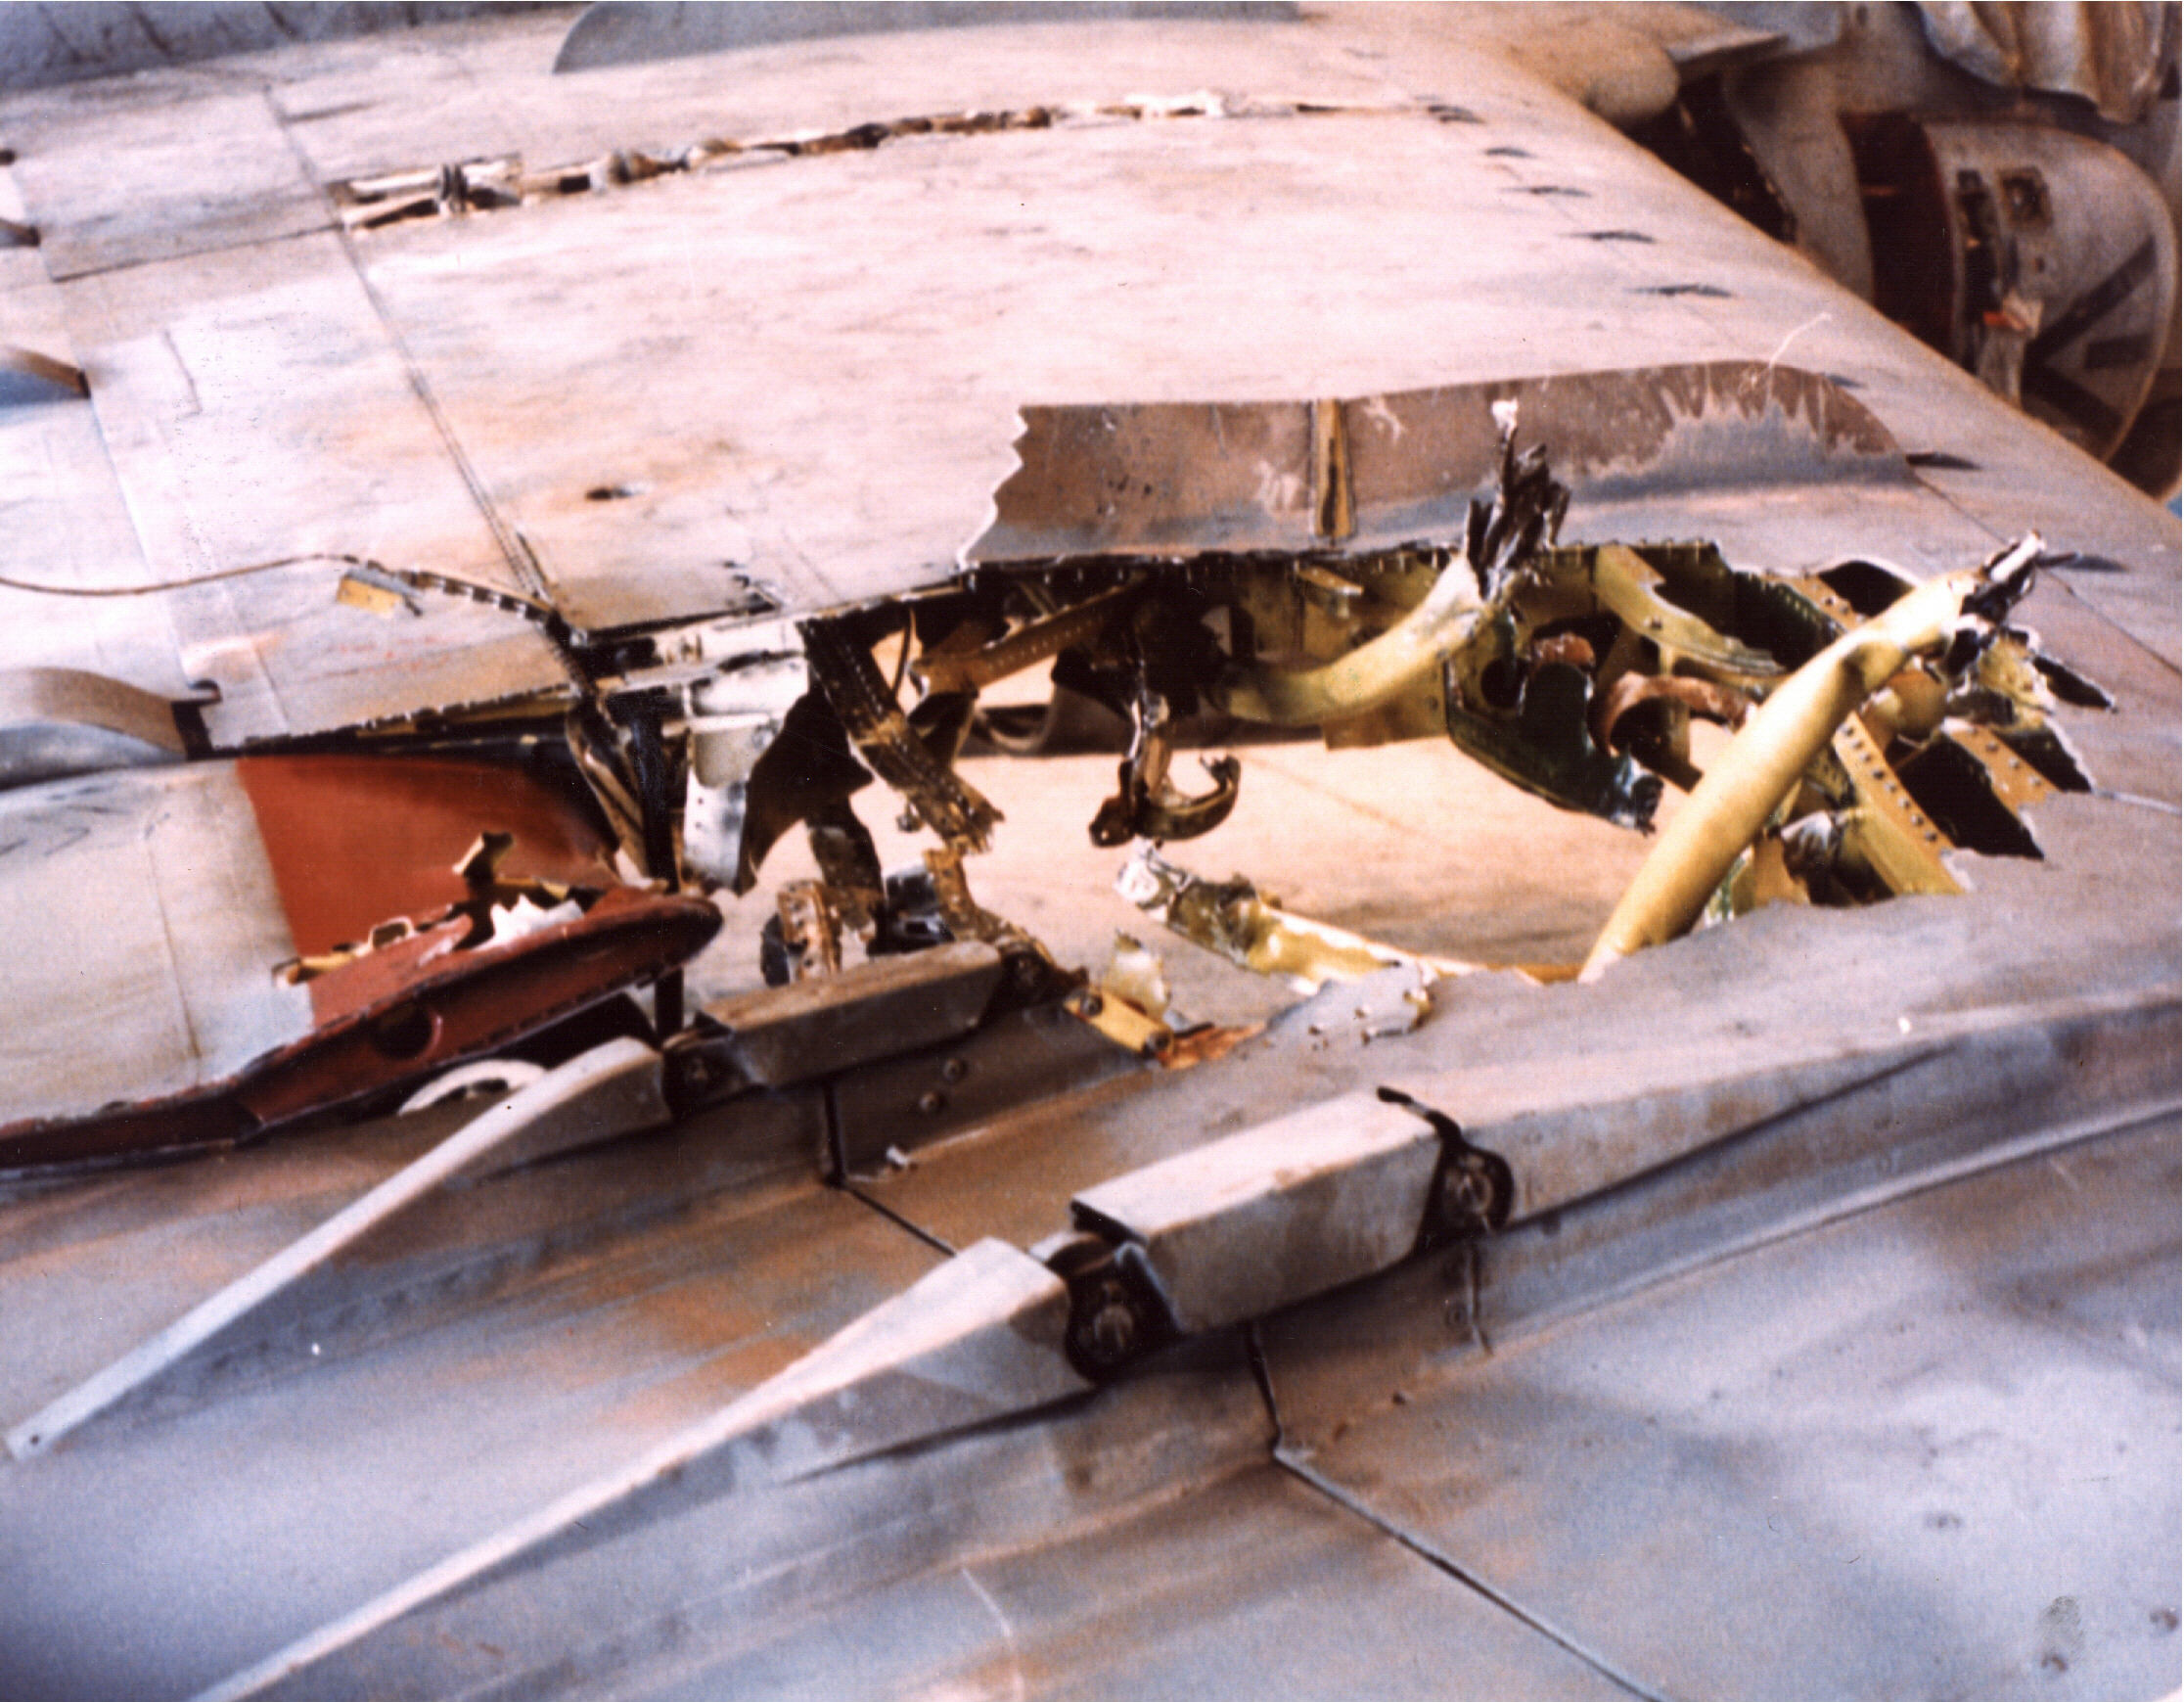 http://upload.wikimedia.org/wikipedia/commons/4/47/A-6E_flak_damage_to_wing_dring_1991_Gulf_War.jpeg